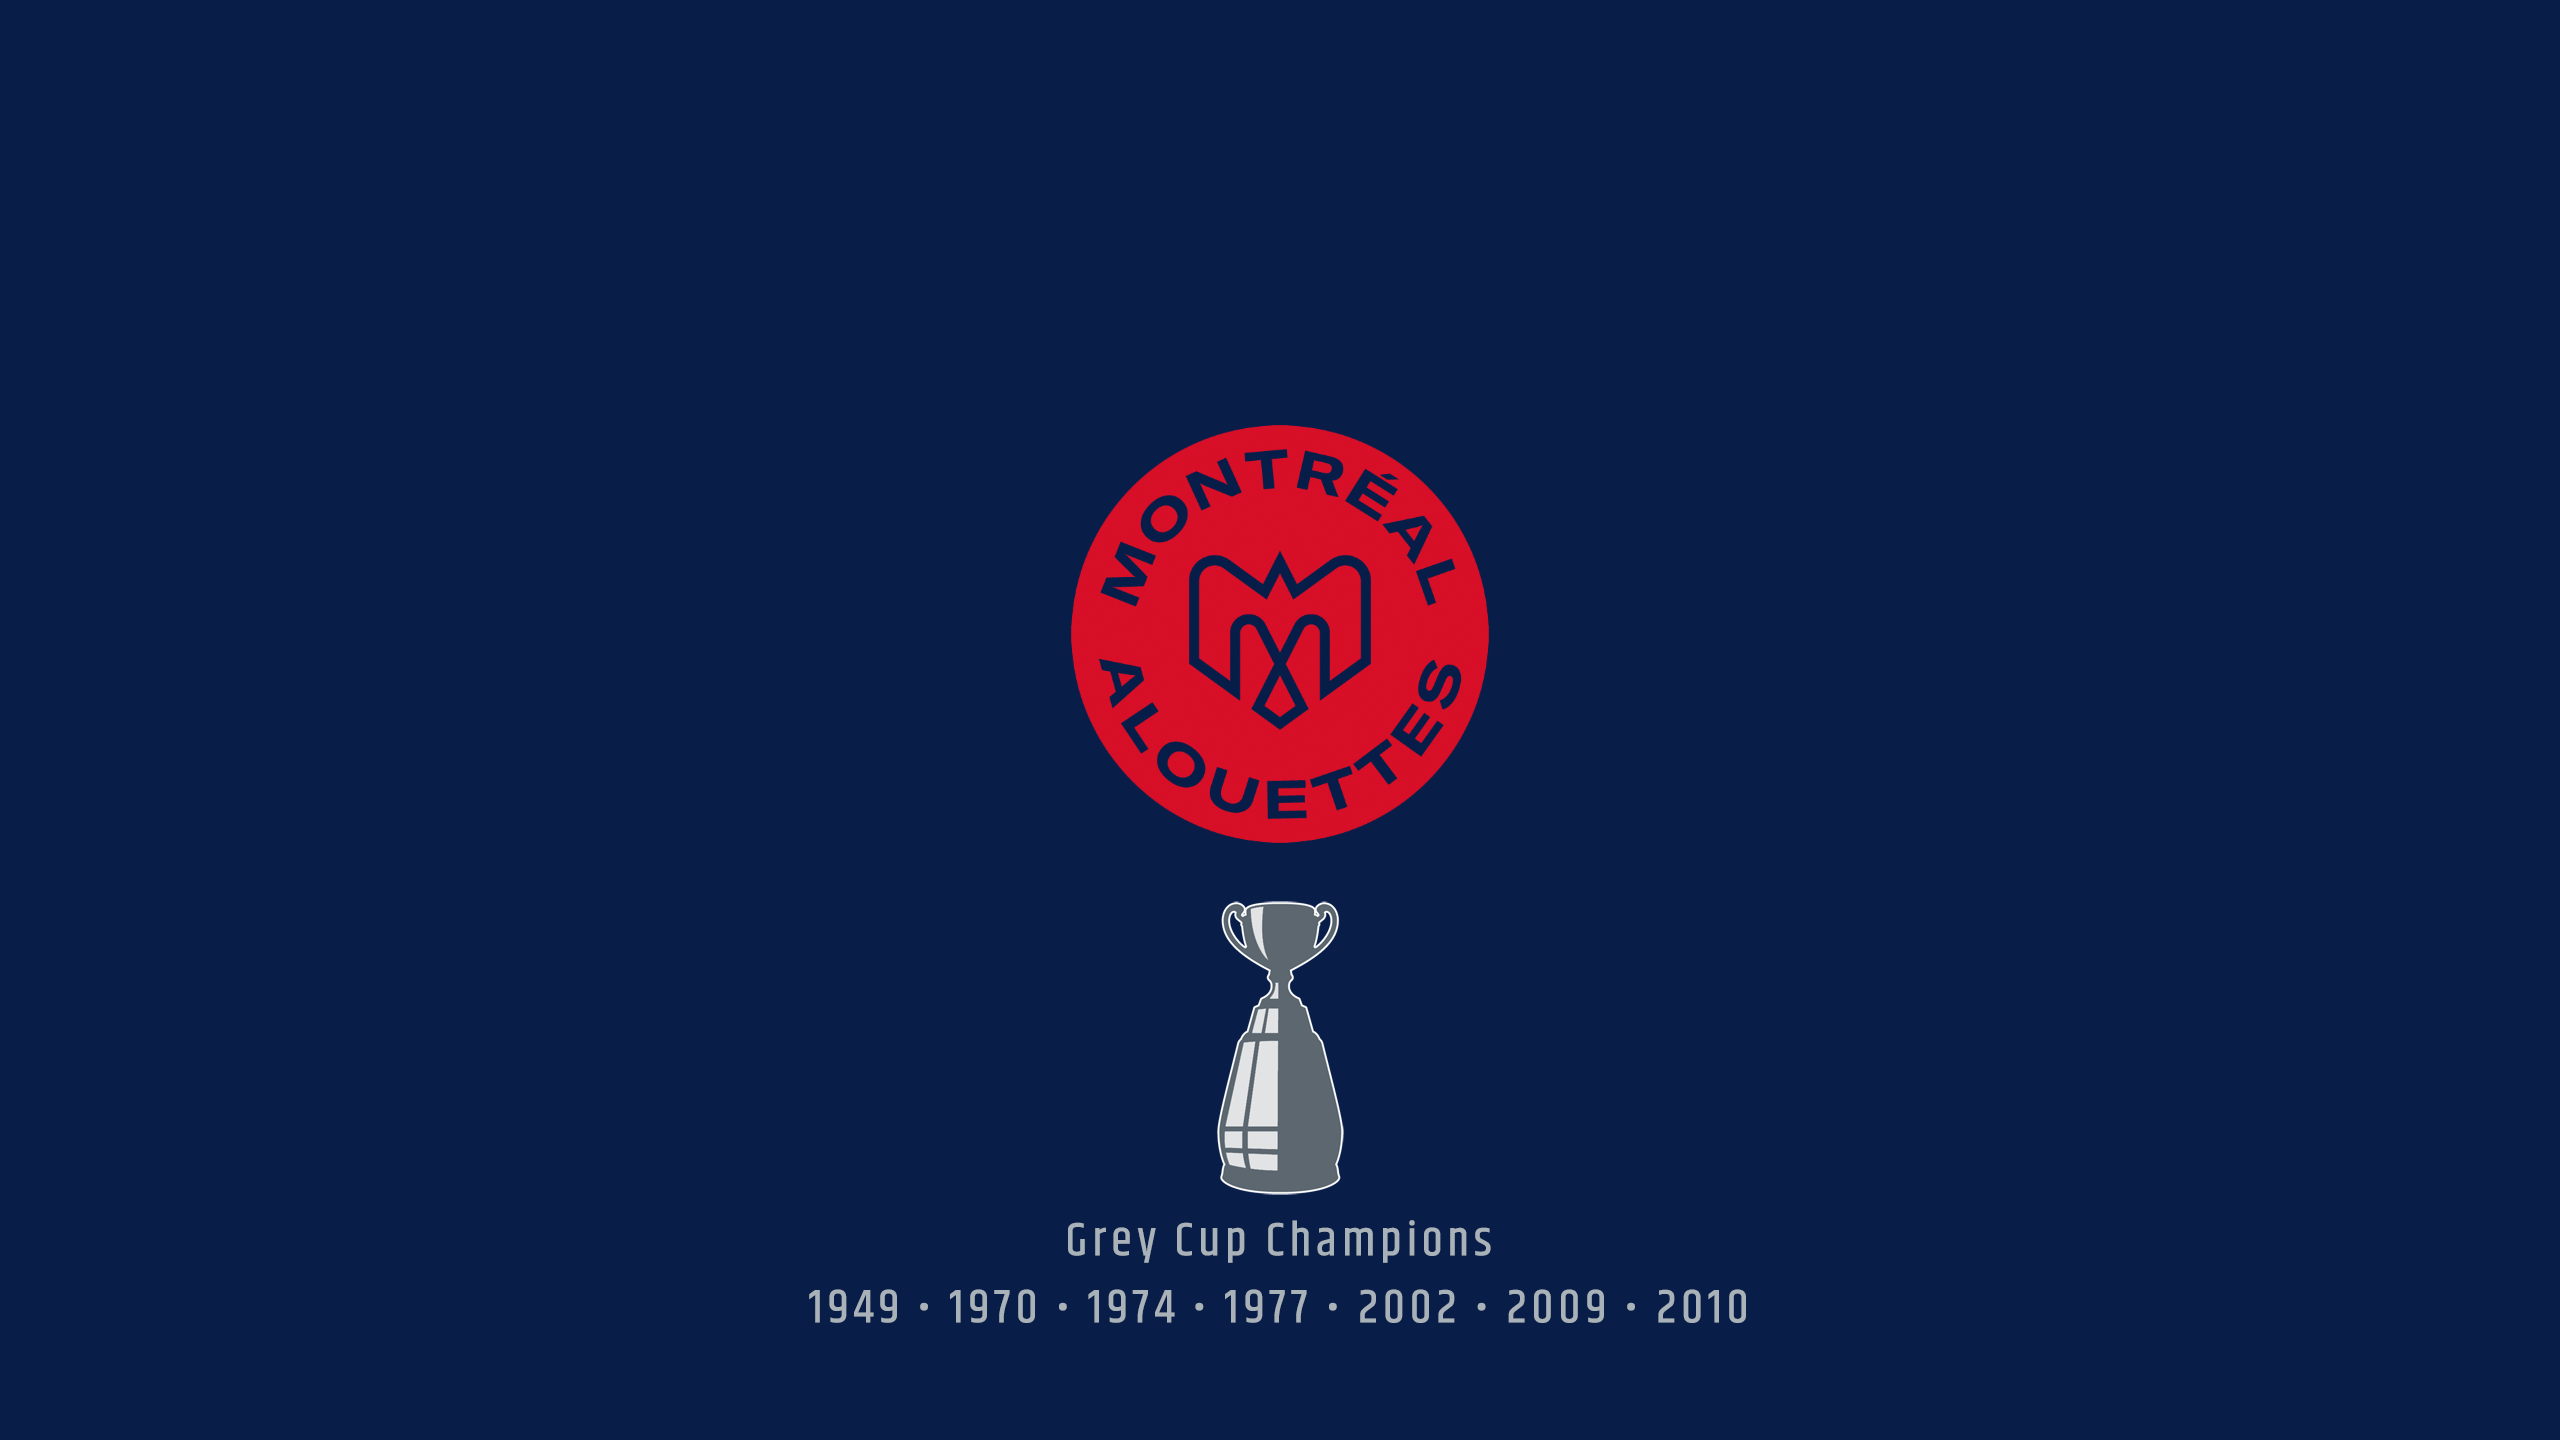 Montreal Alouettes - CFL Champs